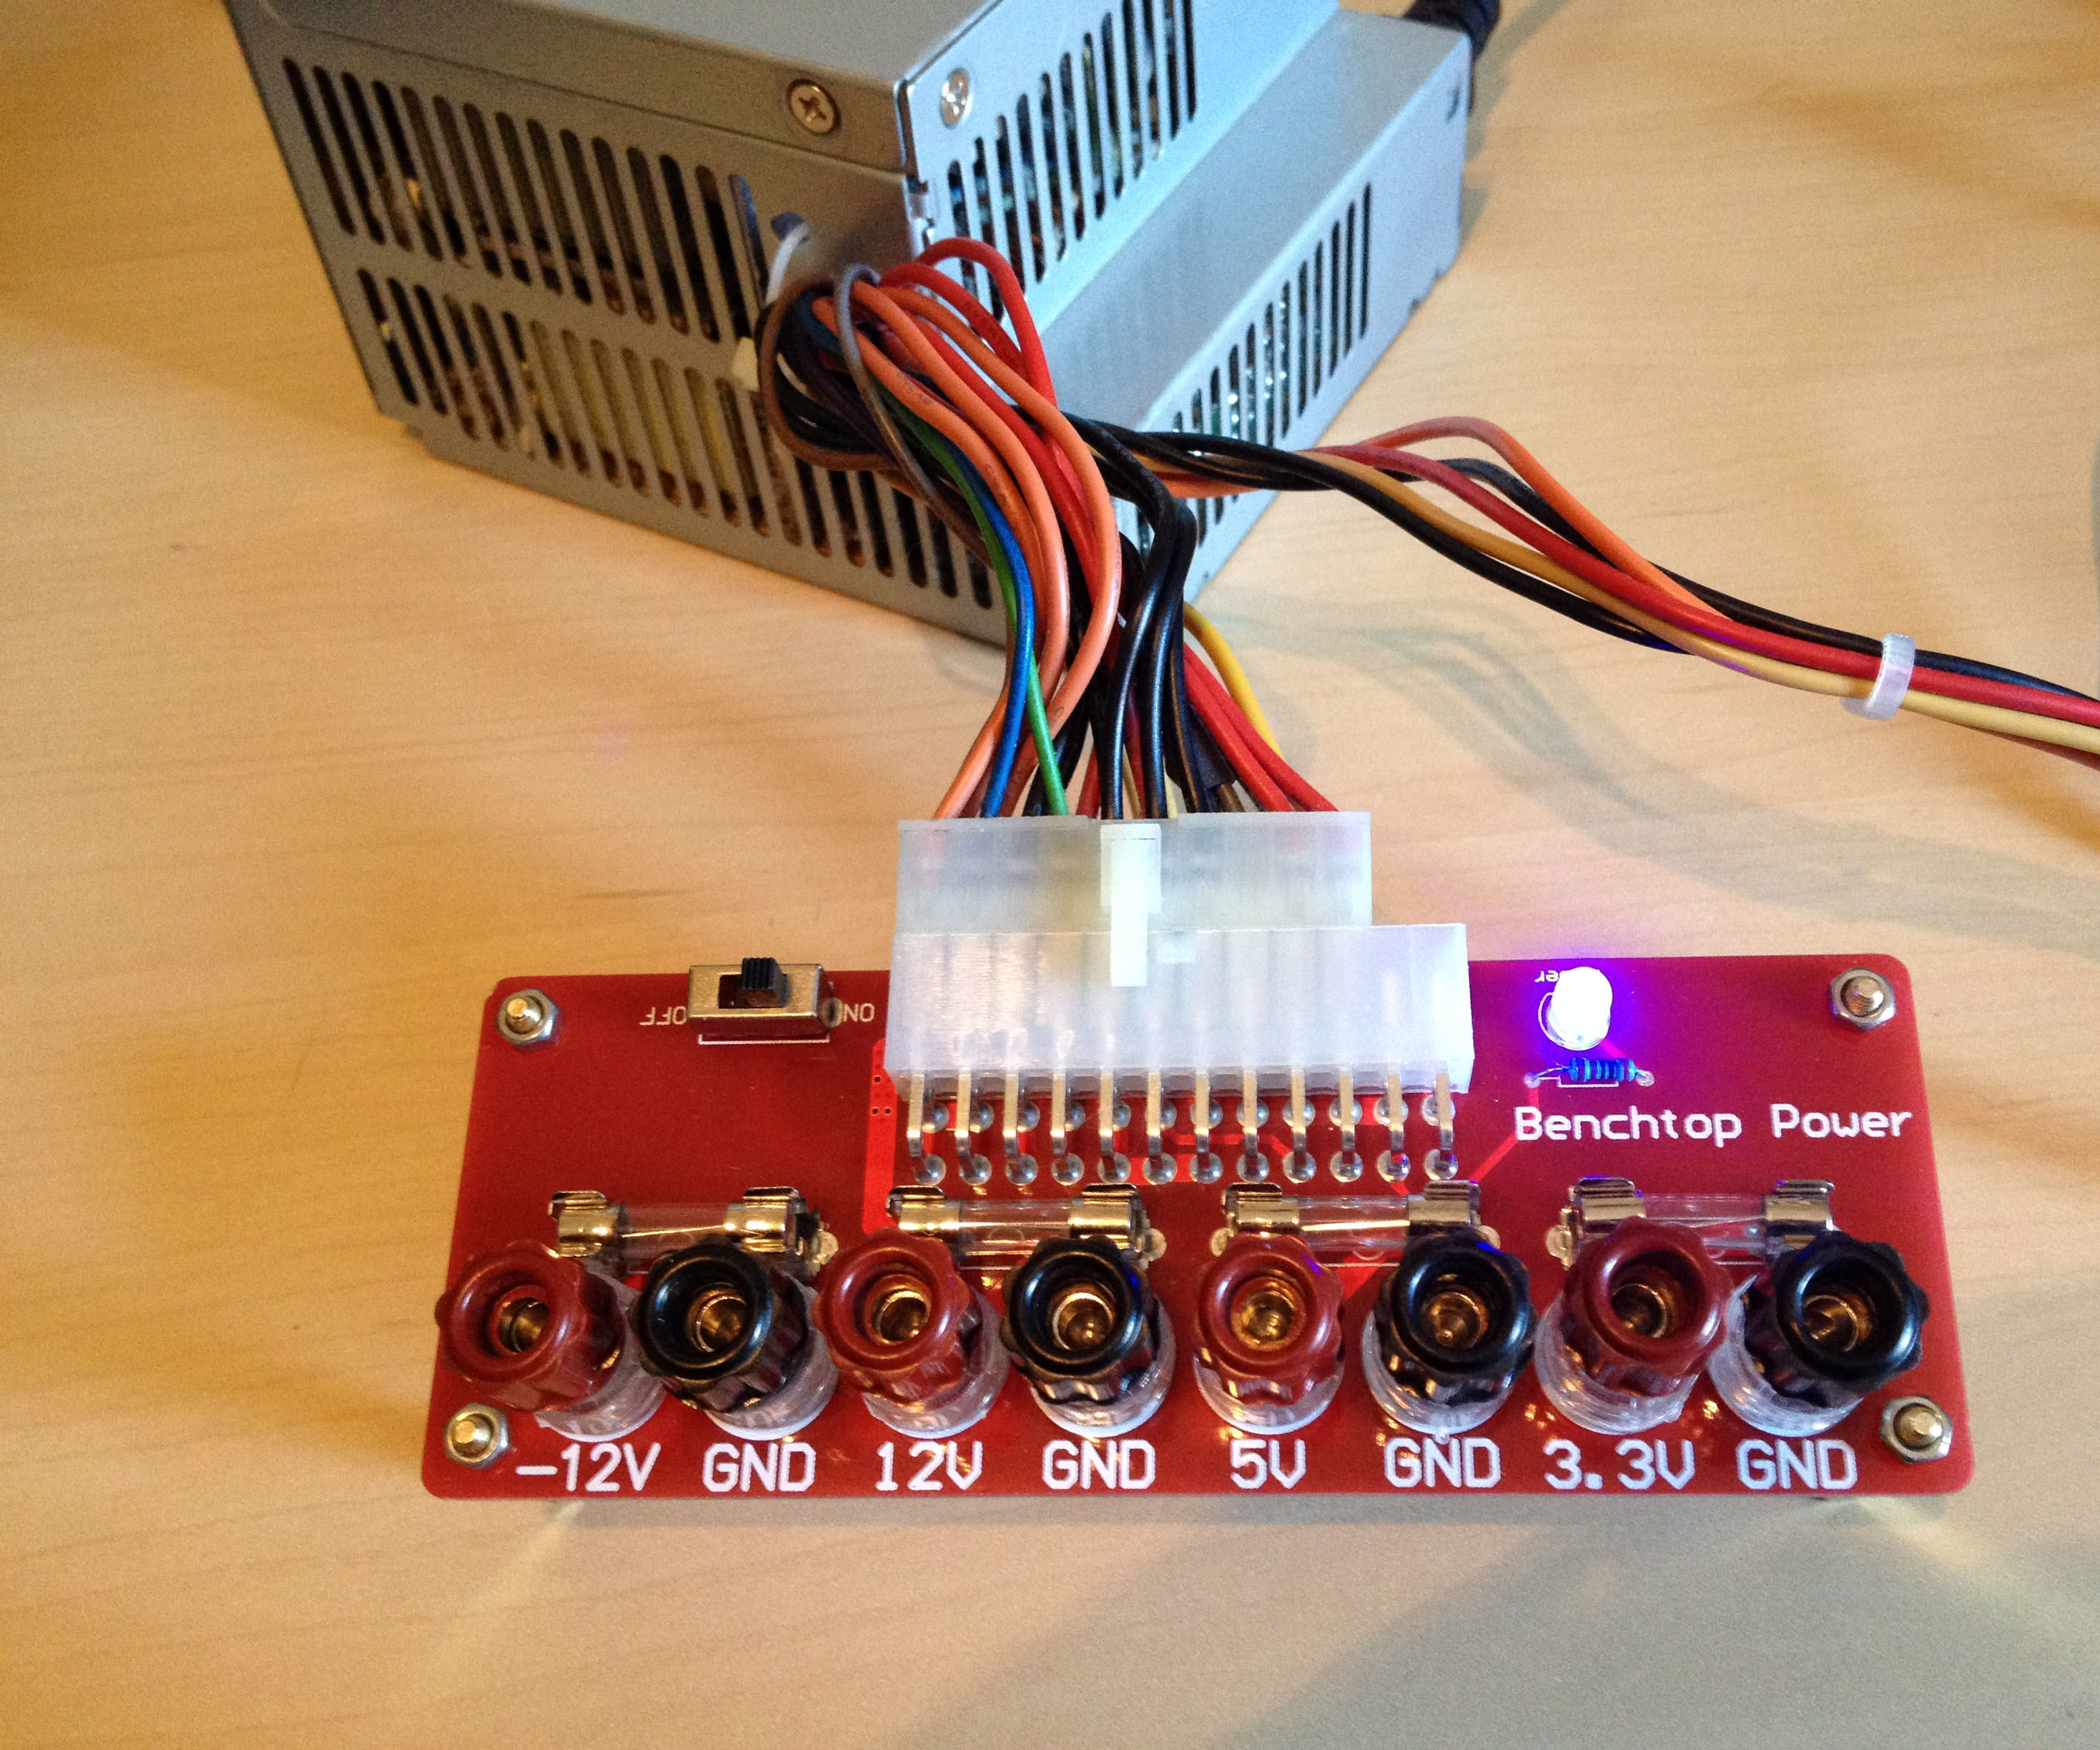 Convert a computer power supply to a lab bench using ATX breakout board